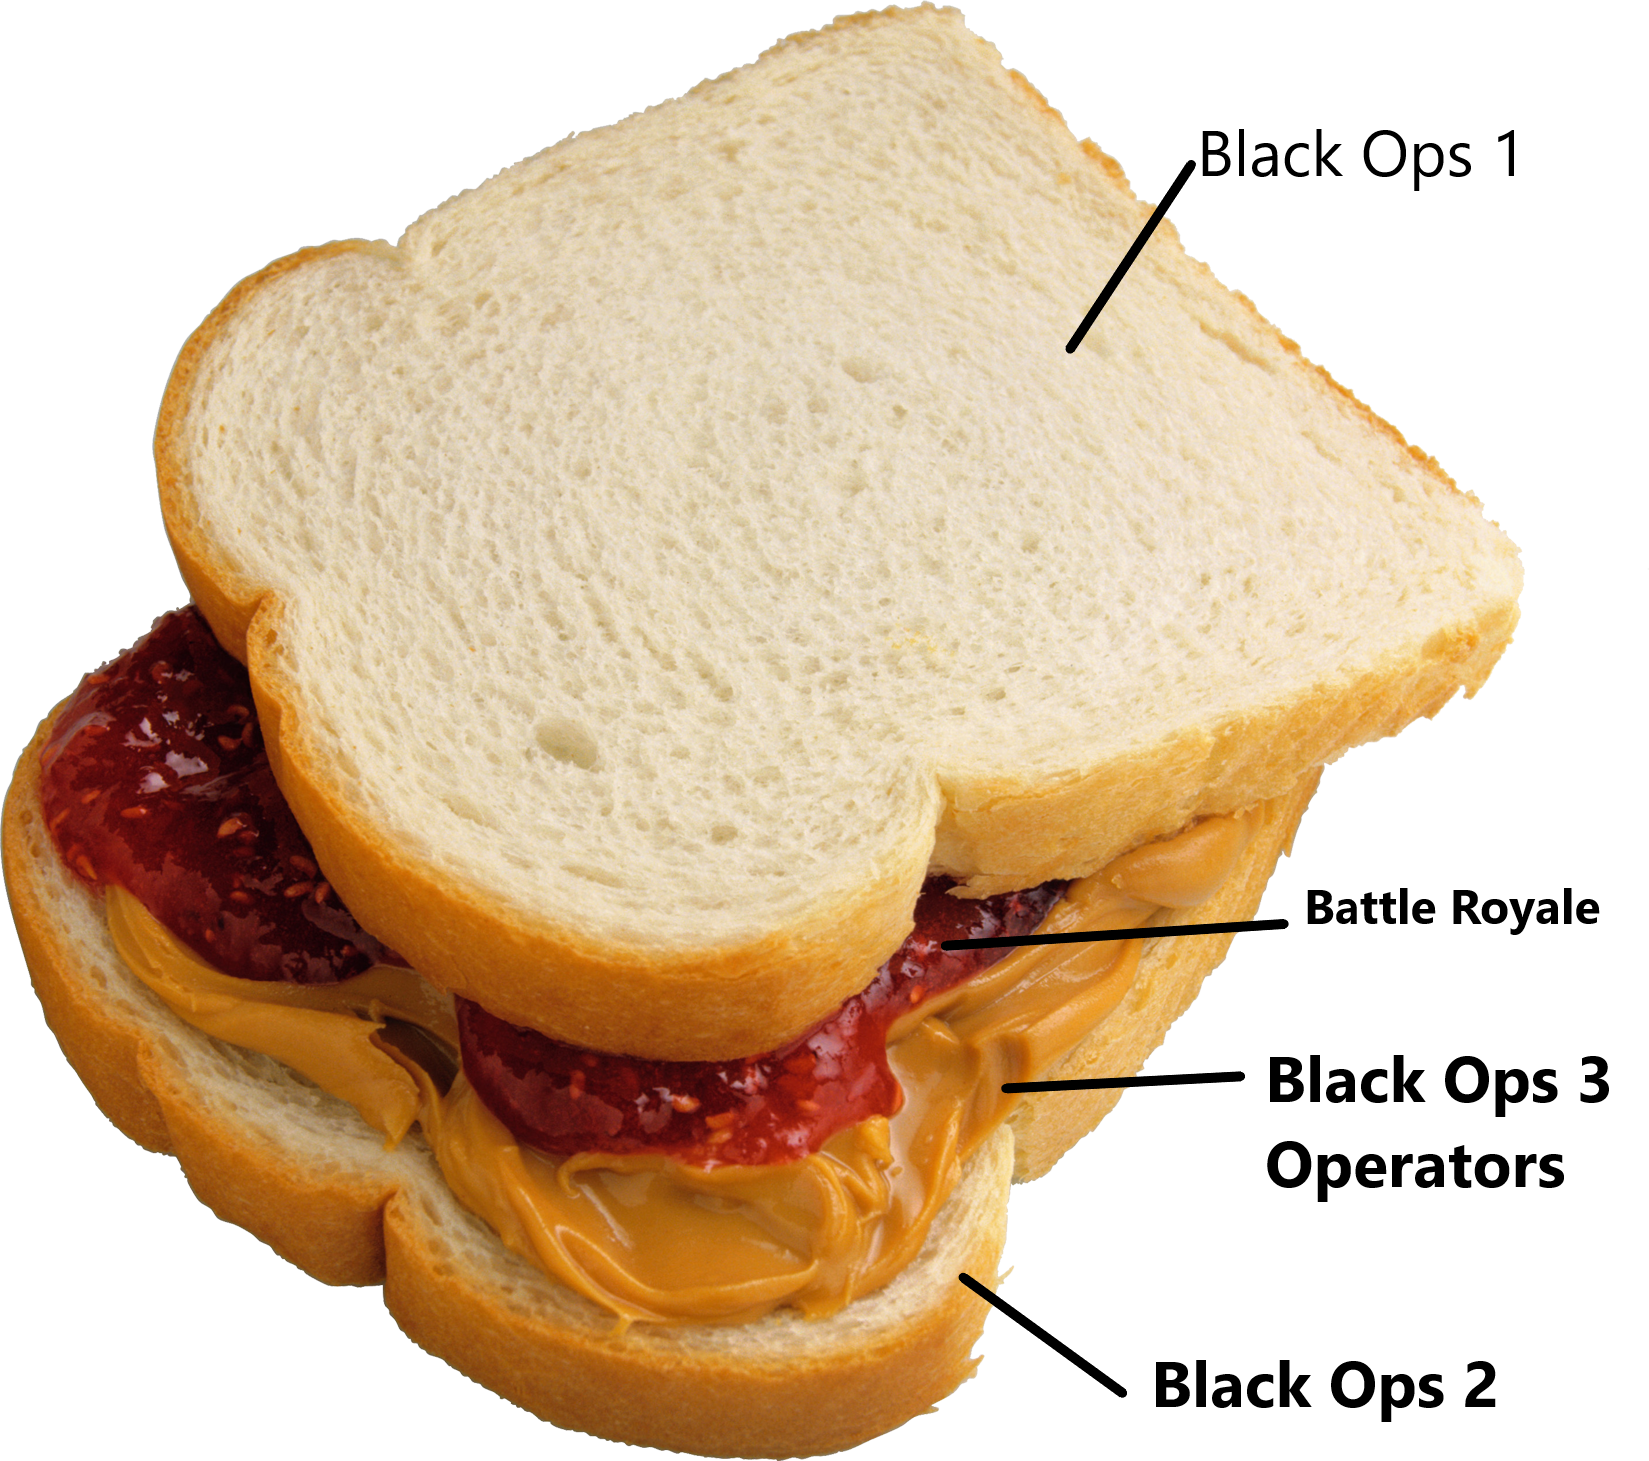 Imageblack Ops 4 Development Cycle Must Have Been Like - Peanut Butter And Jelly Sandwich Transparent (1649x1461), Png Download